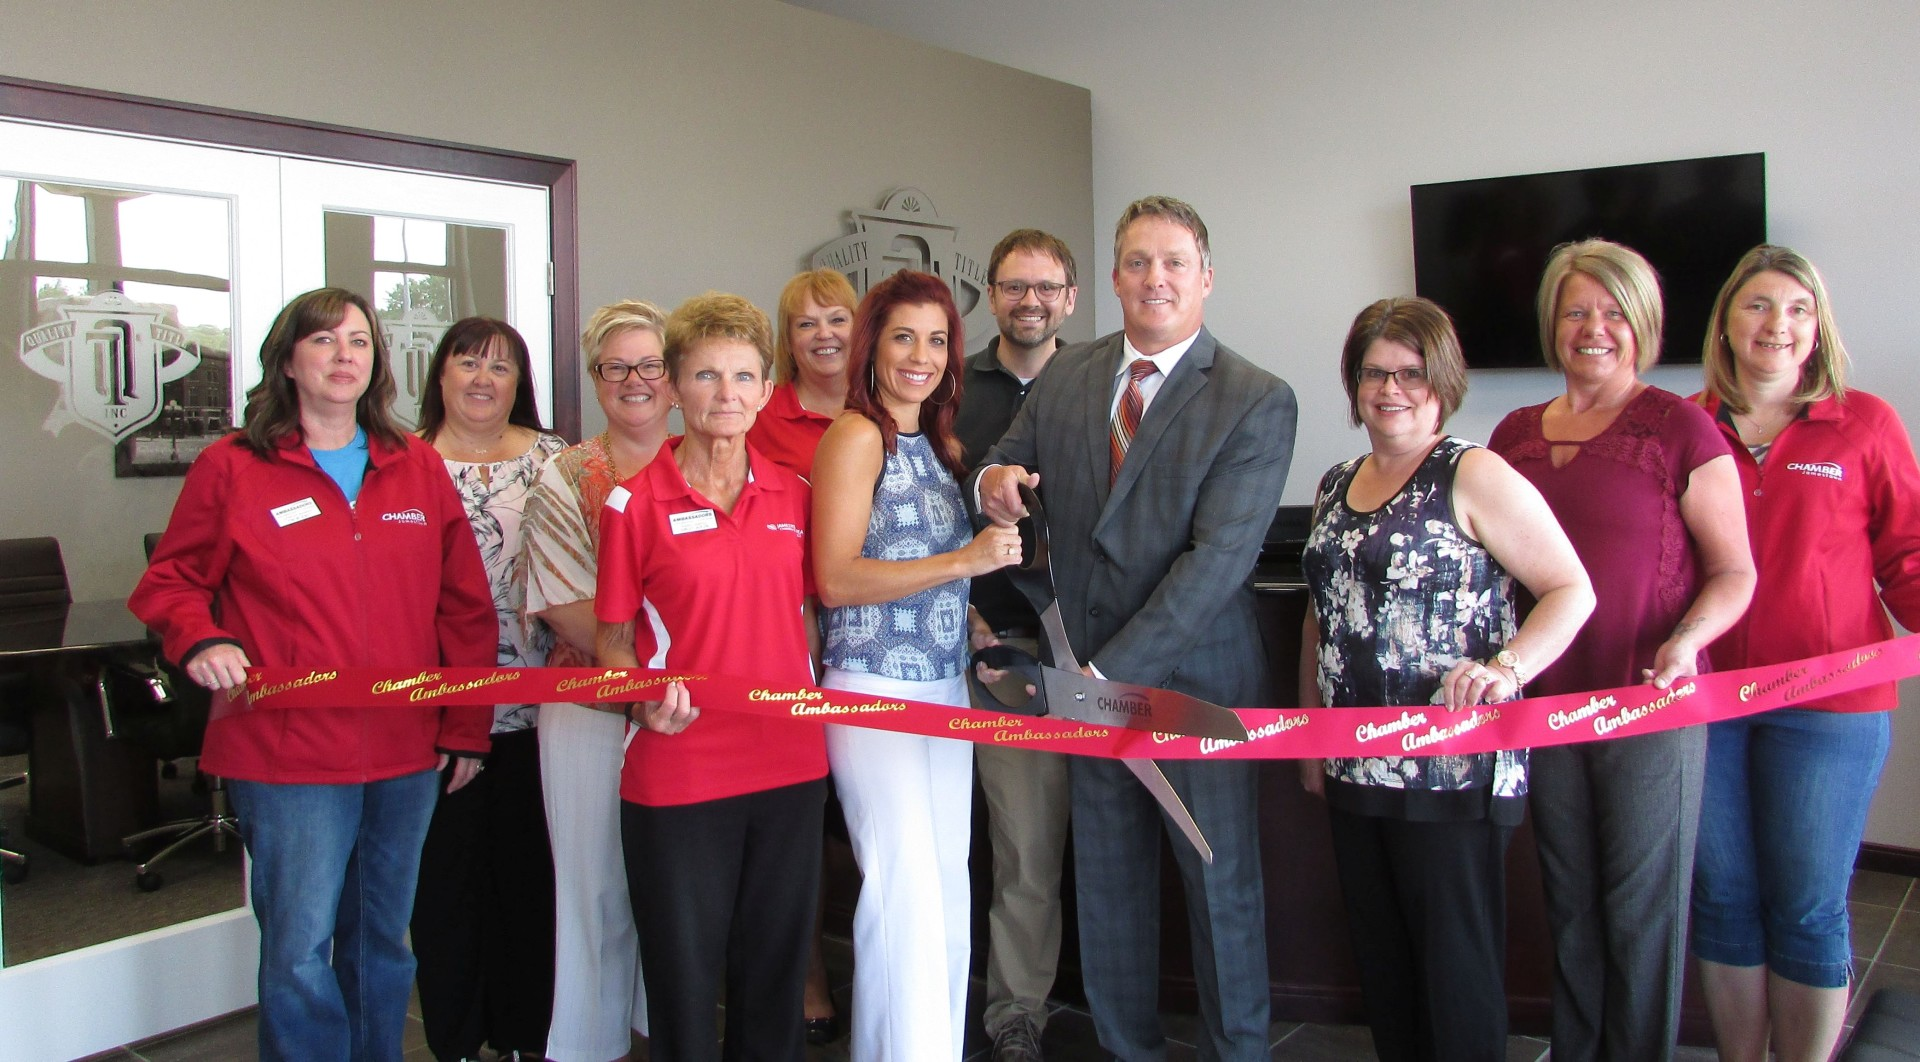 Group-picture-of-ribbon-cutting-6-17(3)-w1920.jpg